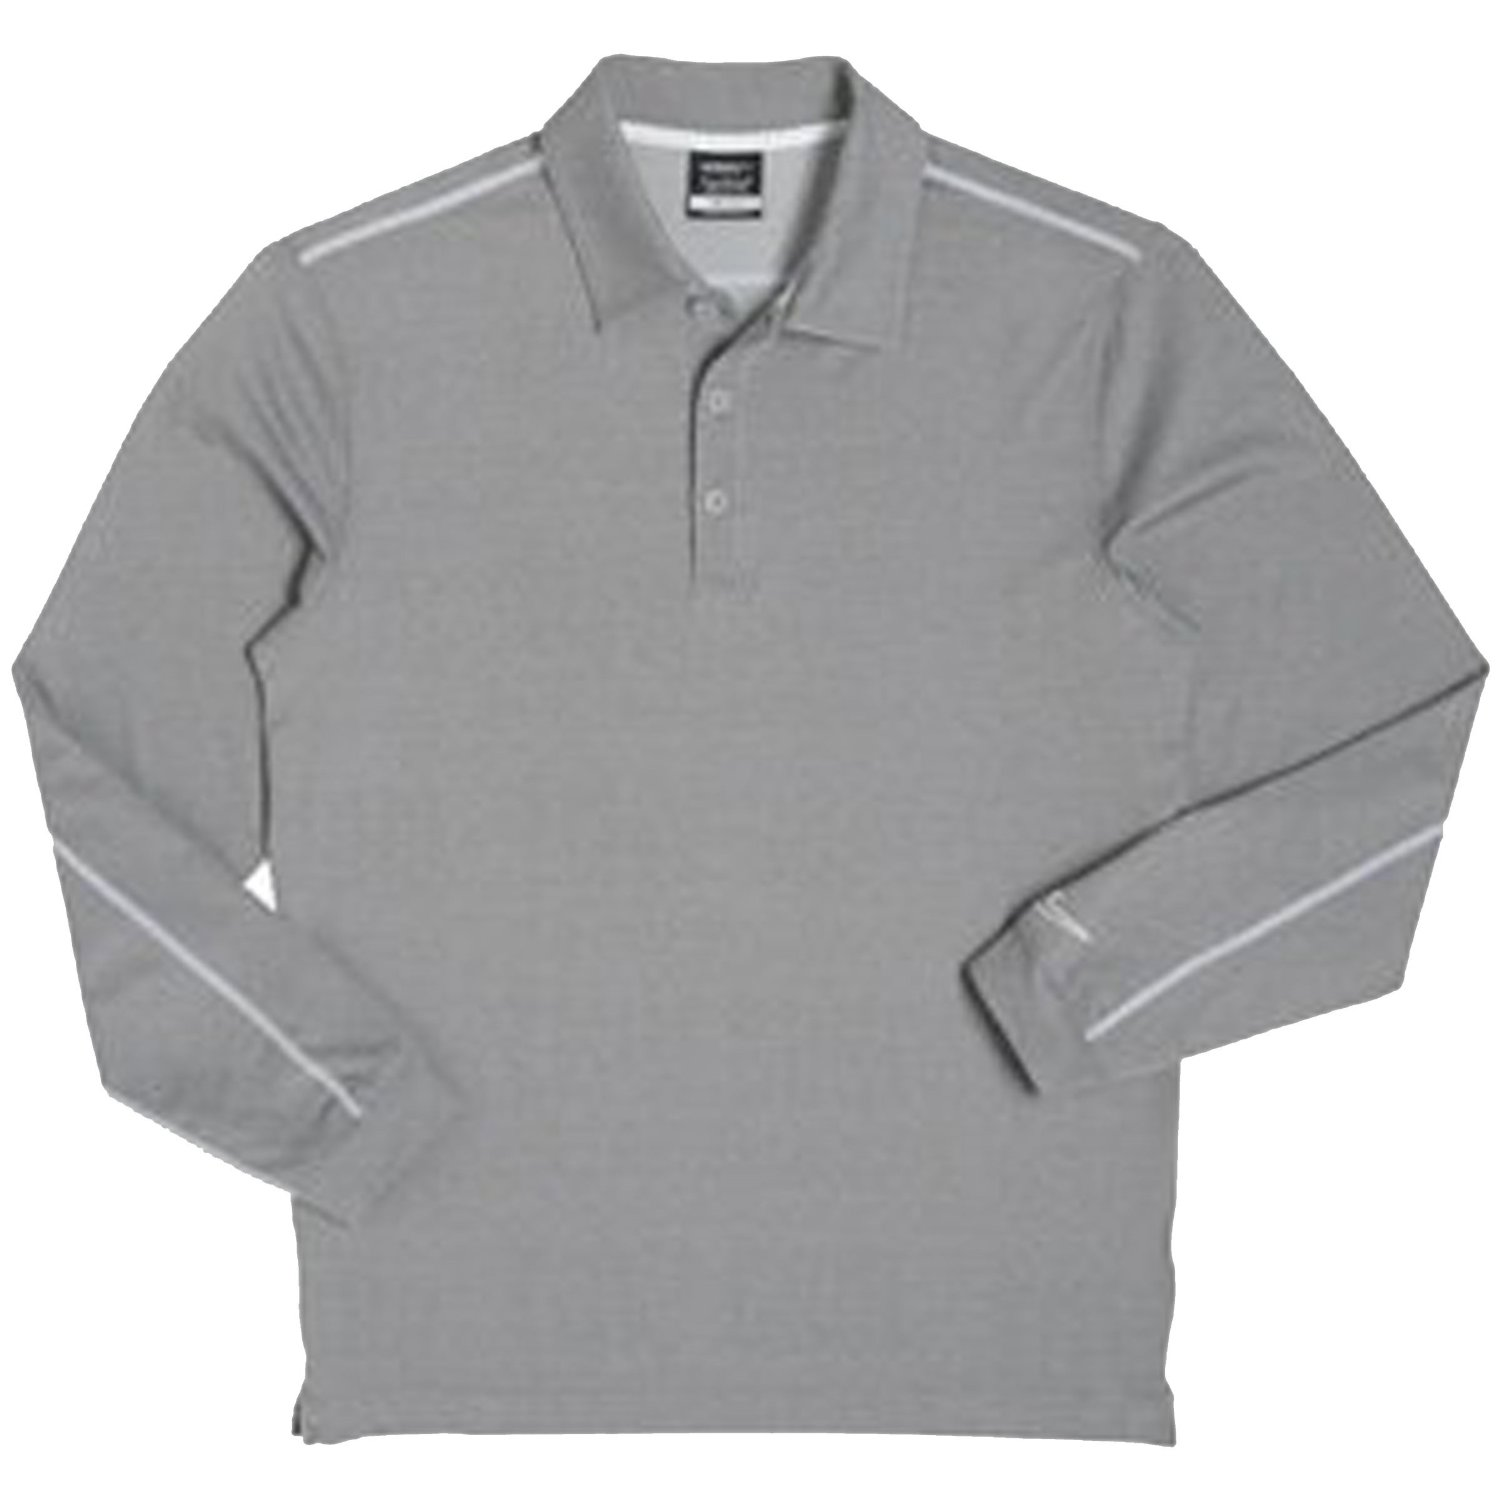 cd86a0ee0 Get Quotations · Nike Men's Dri-Fit Long Sleeve Heathered Bleached Golf  Polo Shirt - Small